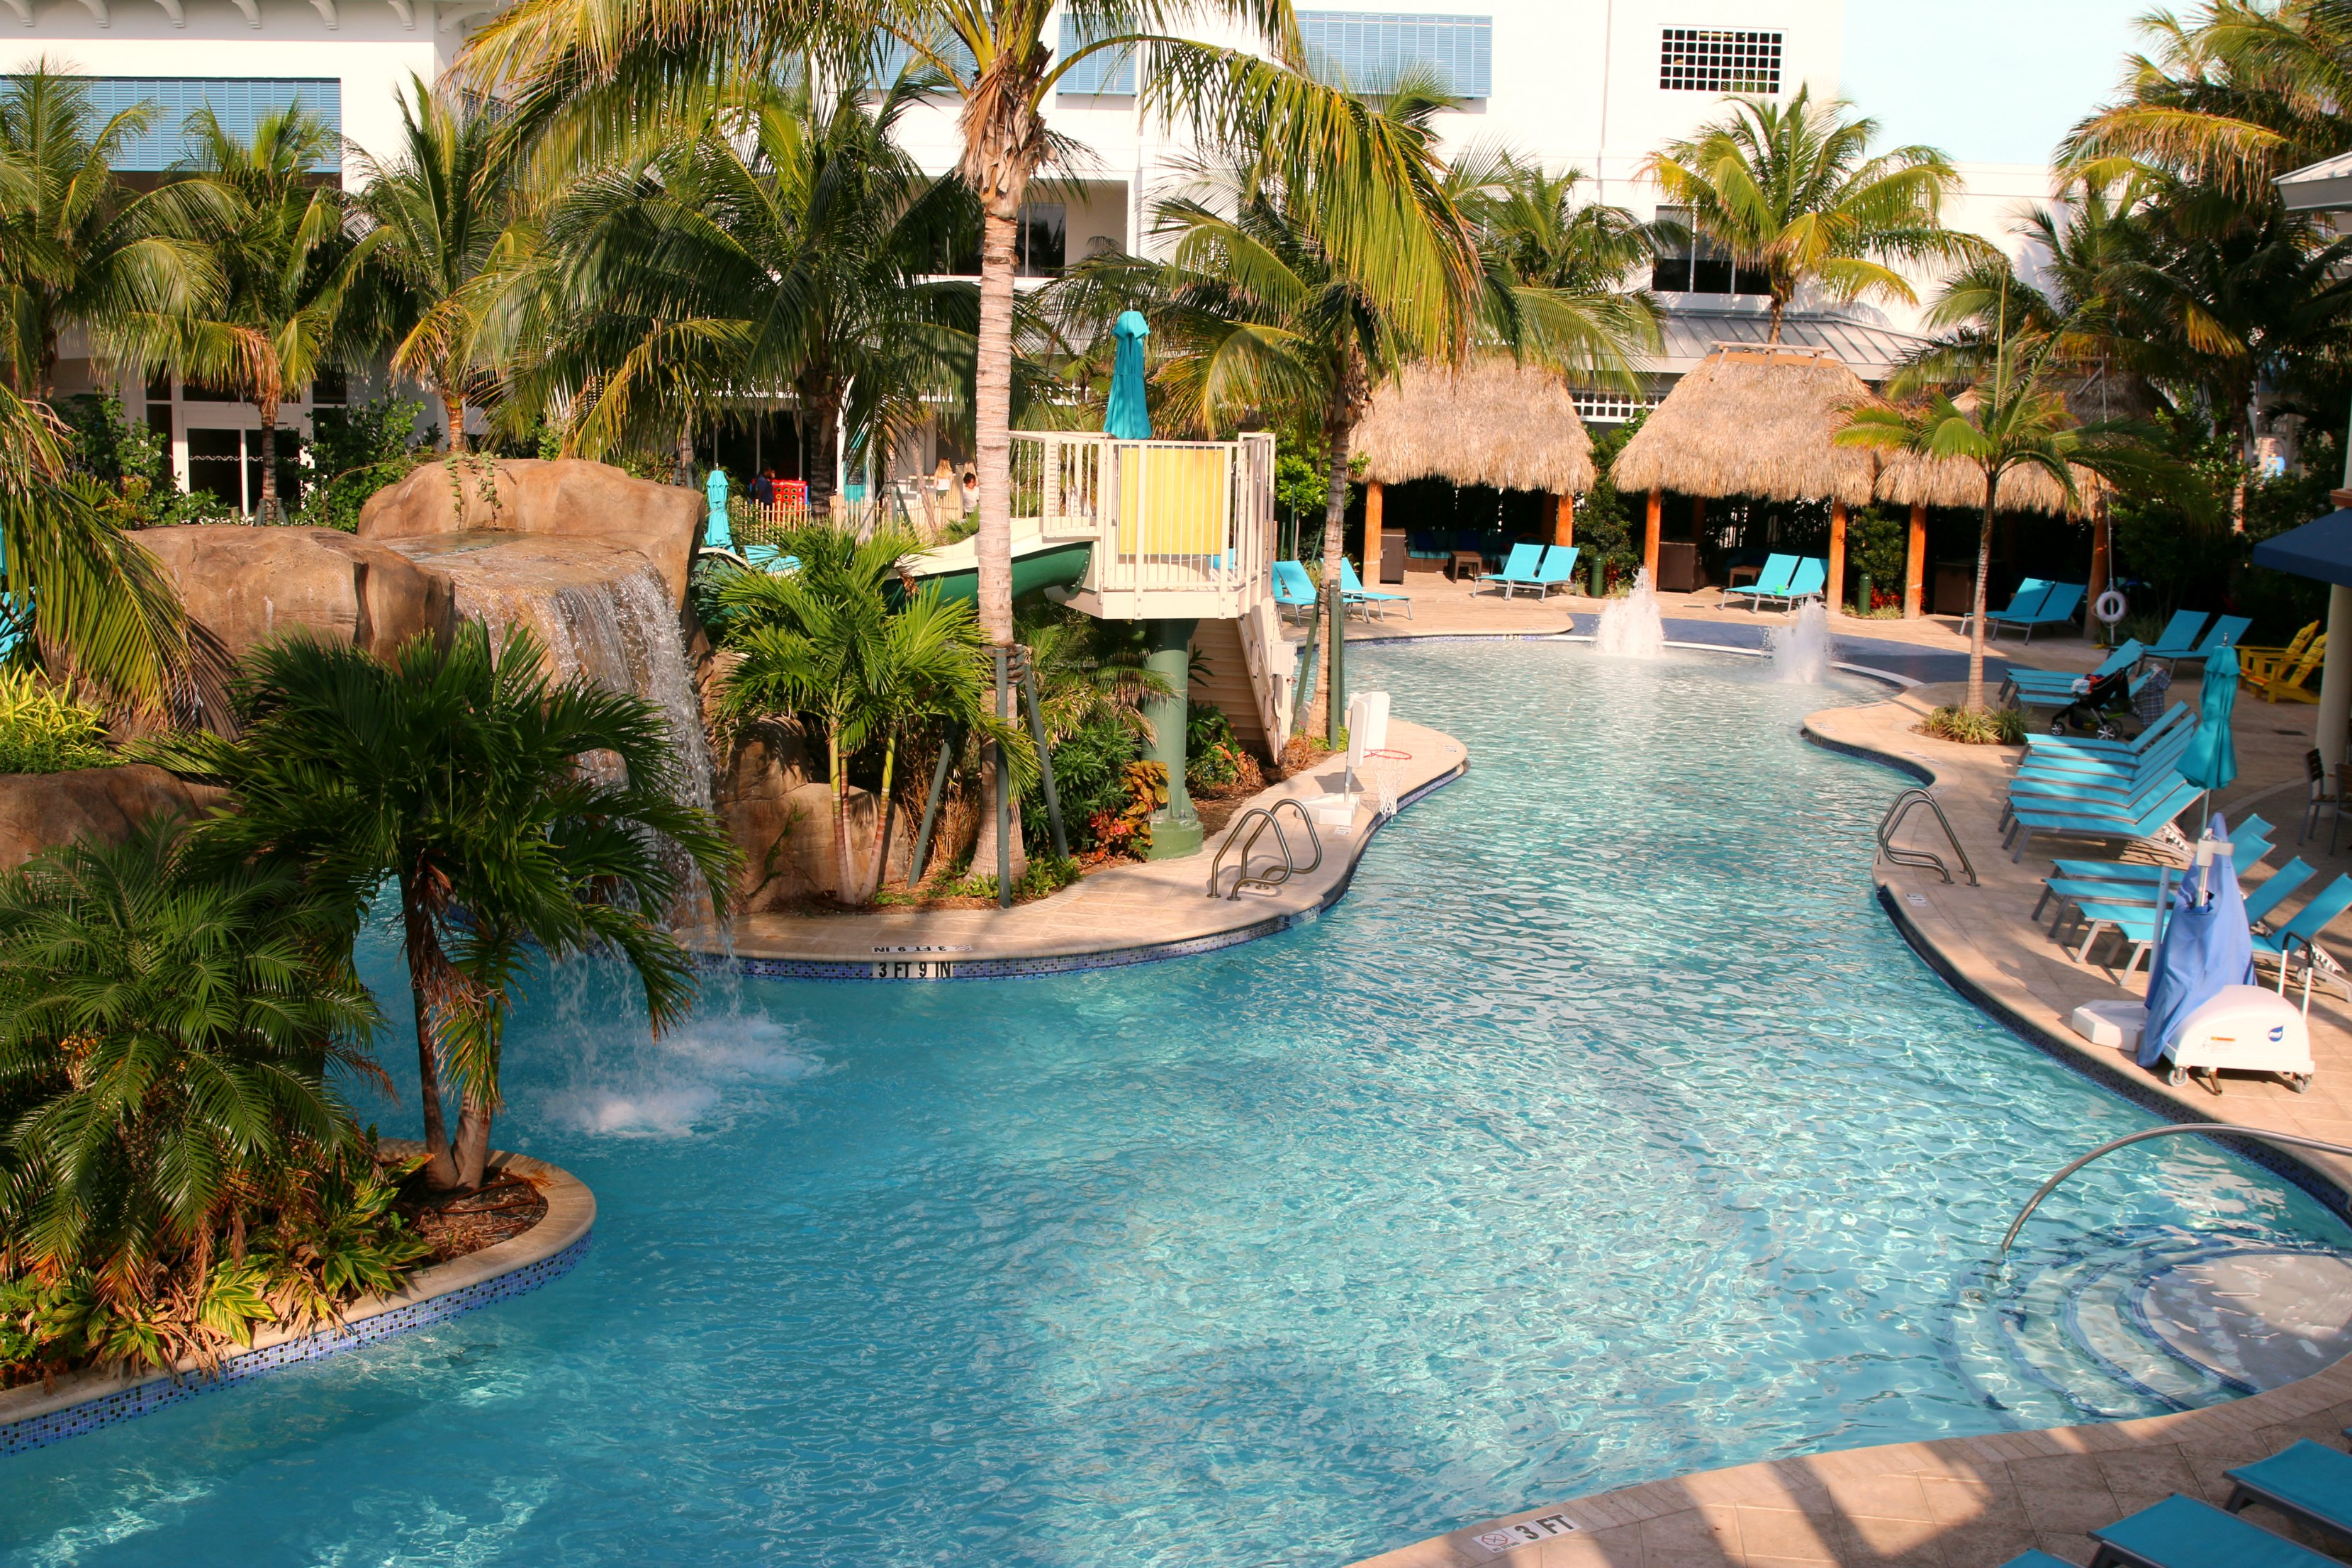 Pool Save Family Friendly Resort Hollywood Fl Margaritaville Beach Cabana